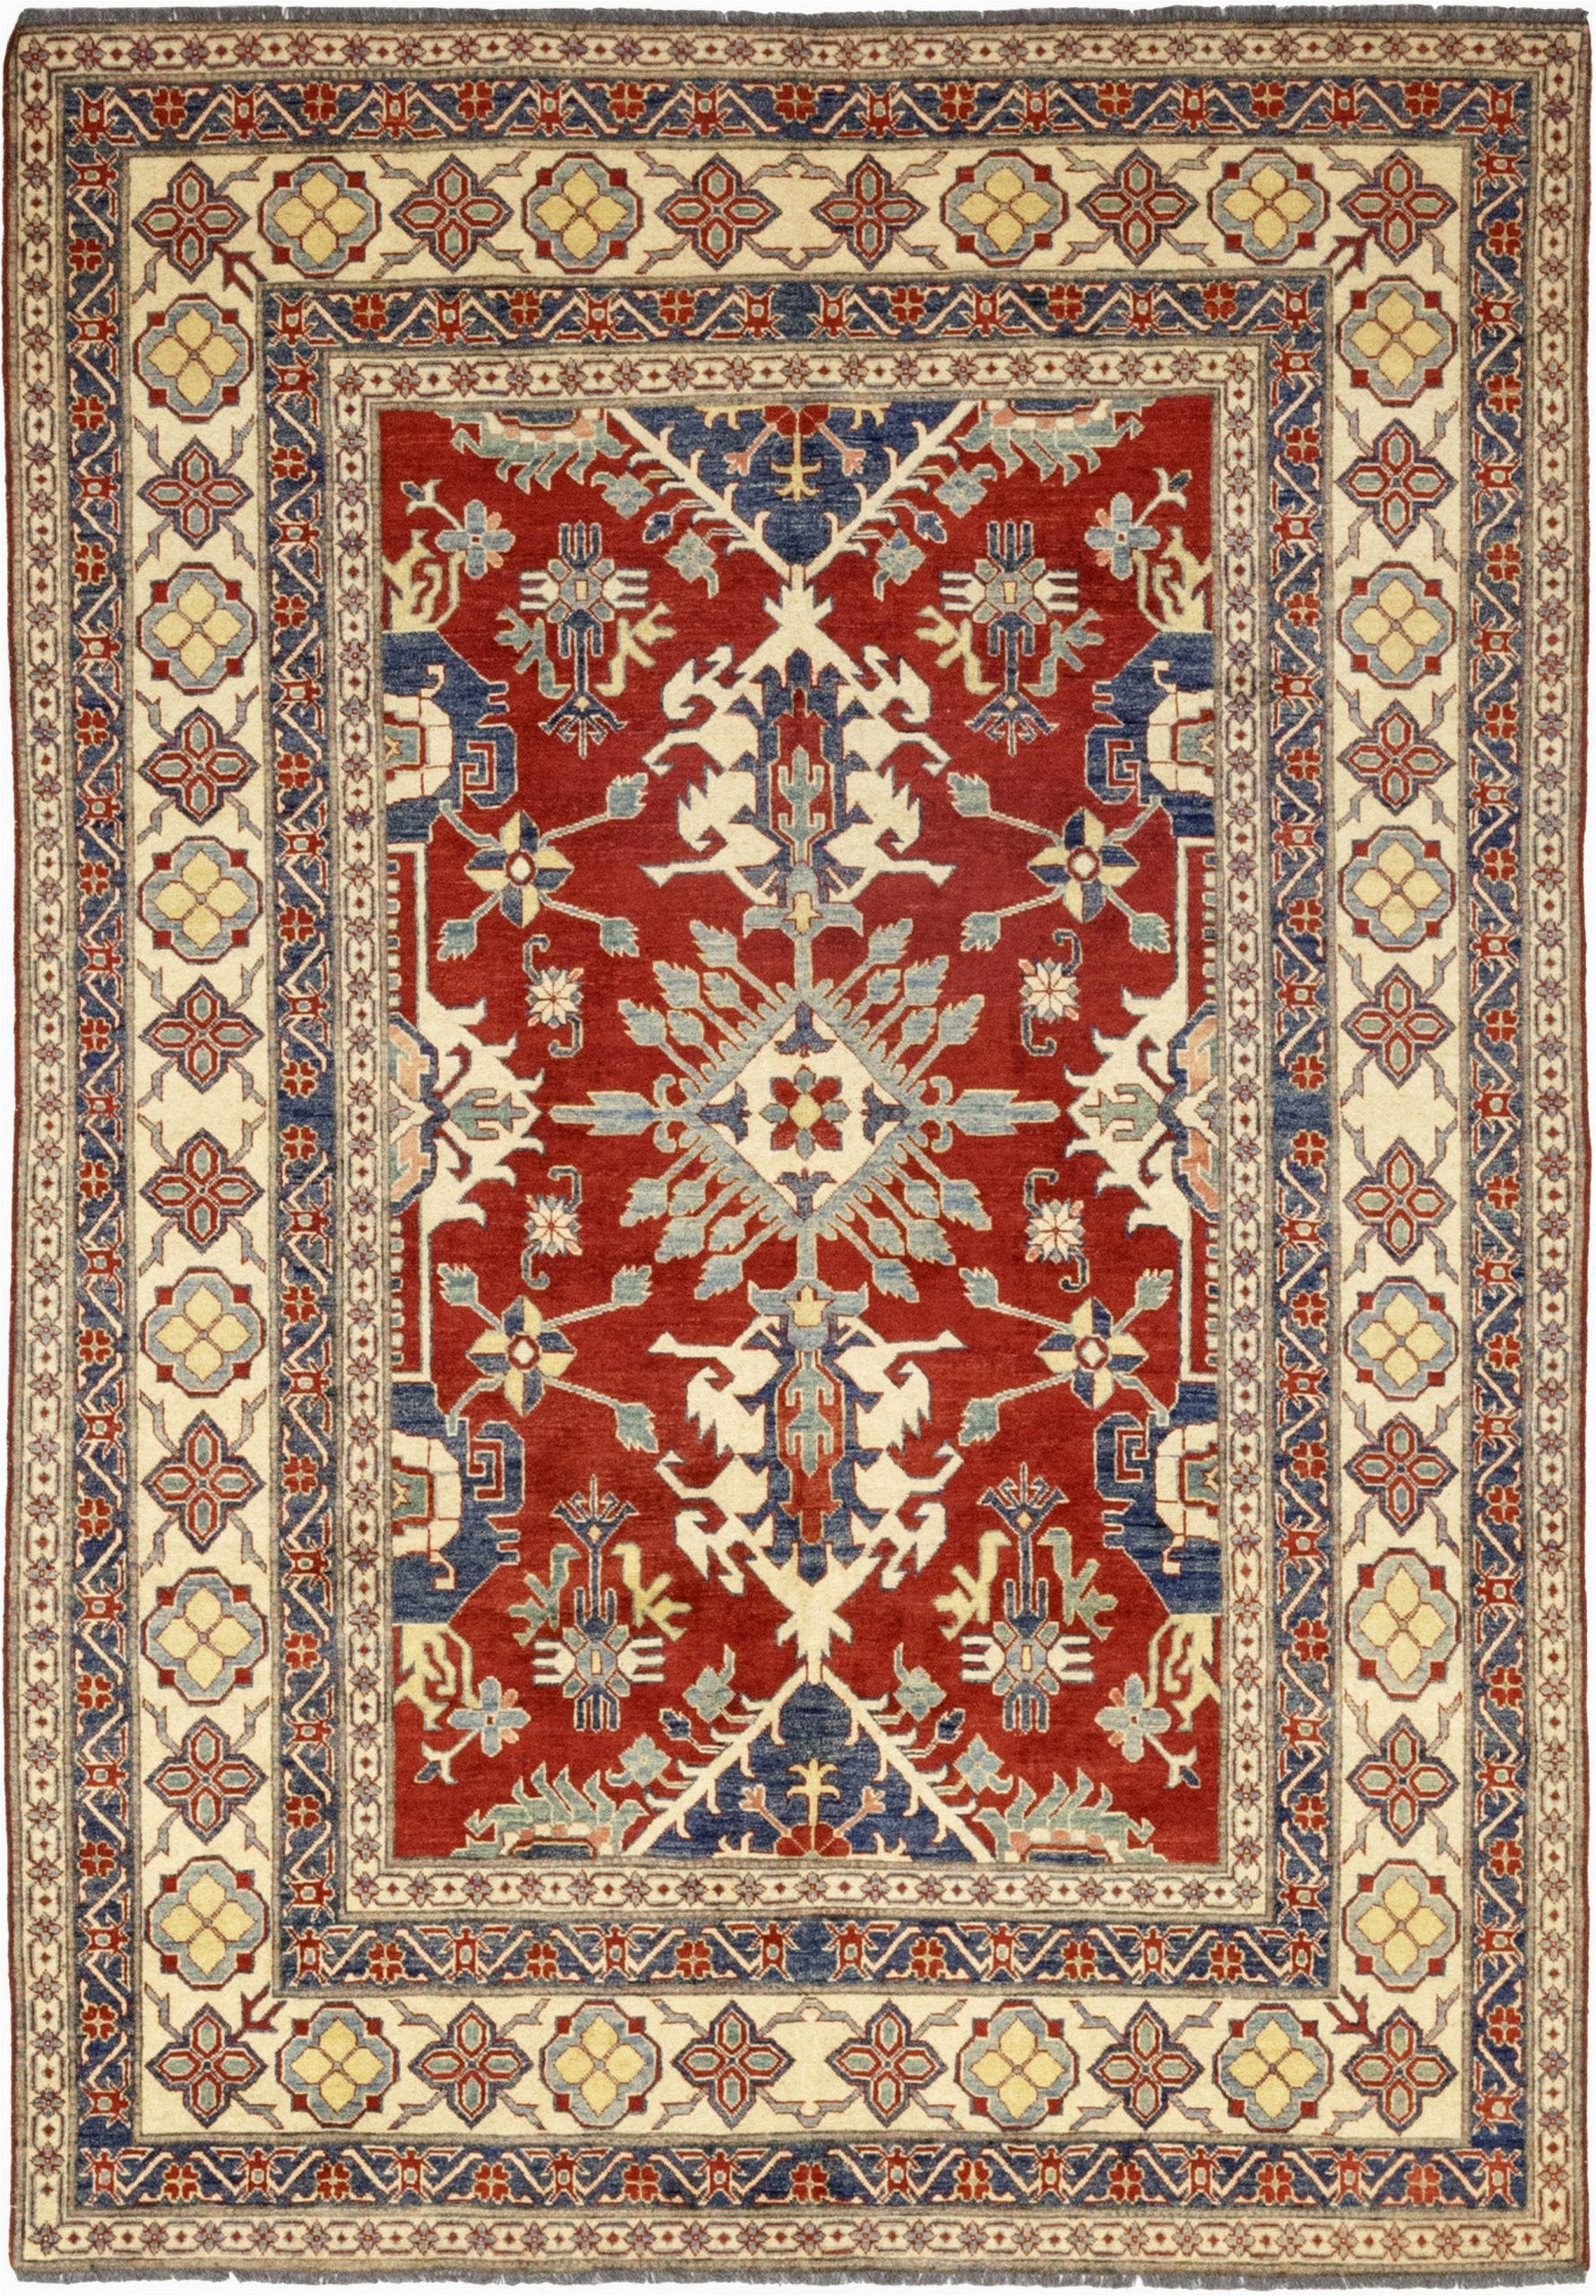 Lowes Room Size area Rugs ✓ Lowes area Rugs Clearance – Modern Rugs Popular Design